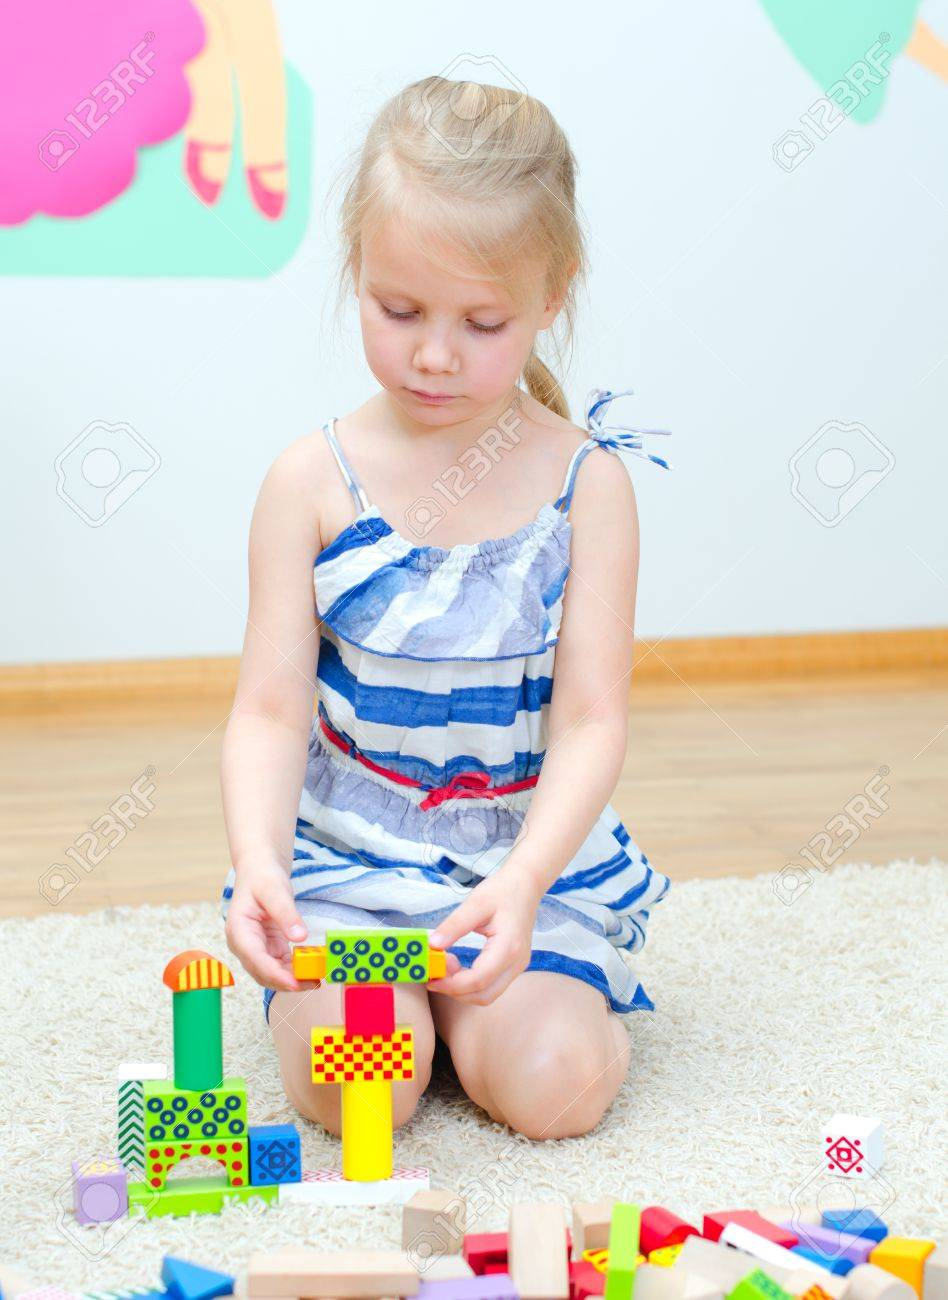 Cute little girl sitting on the floor and playing with building blocks Stock Photo - 18523846